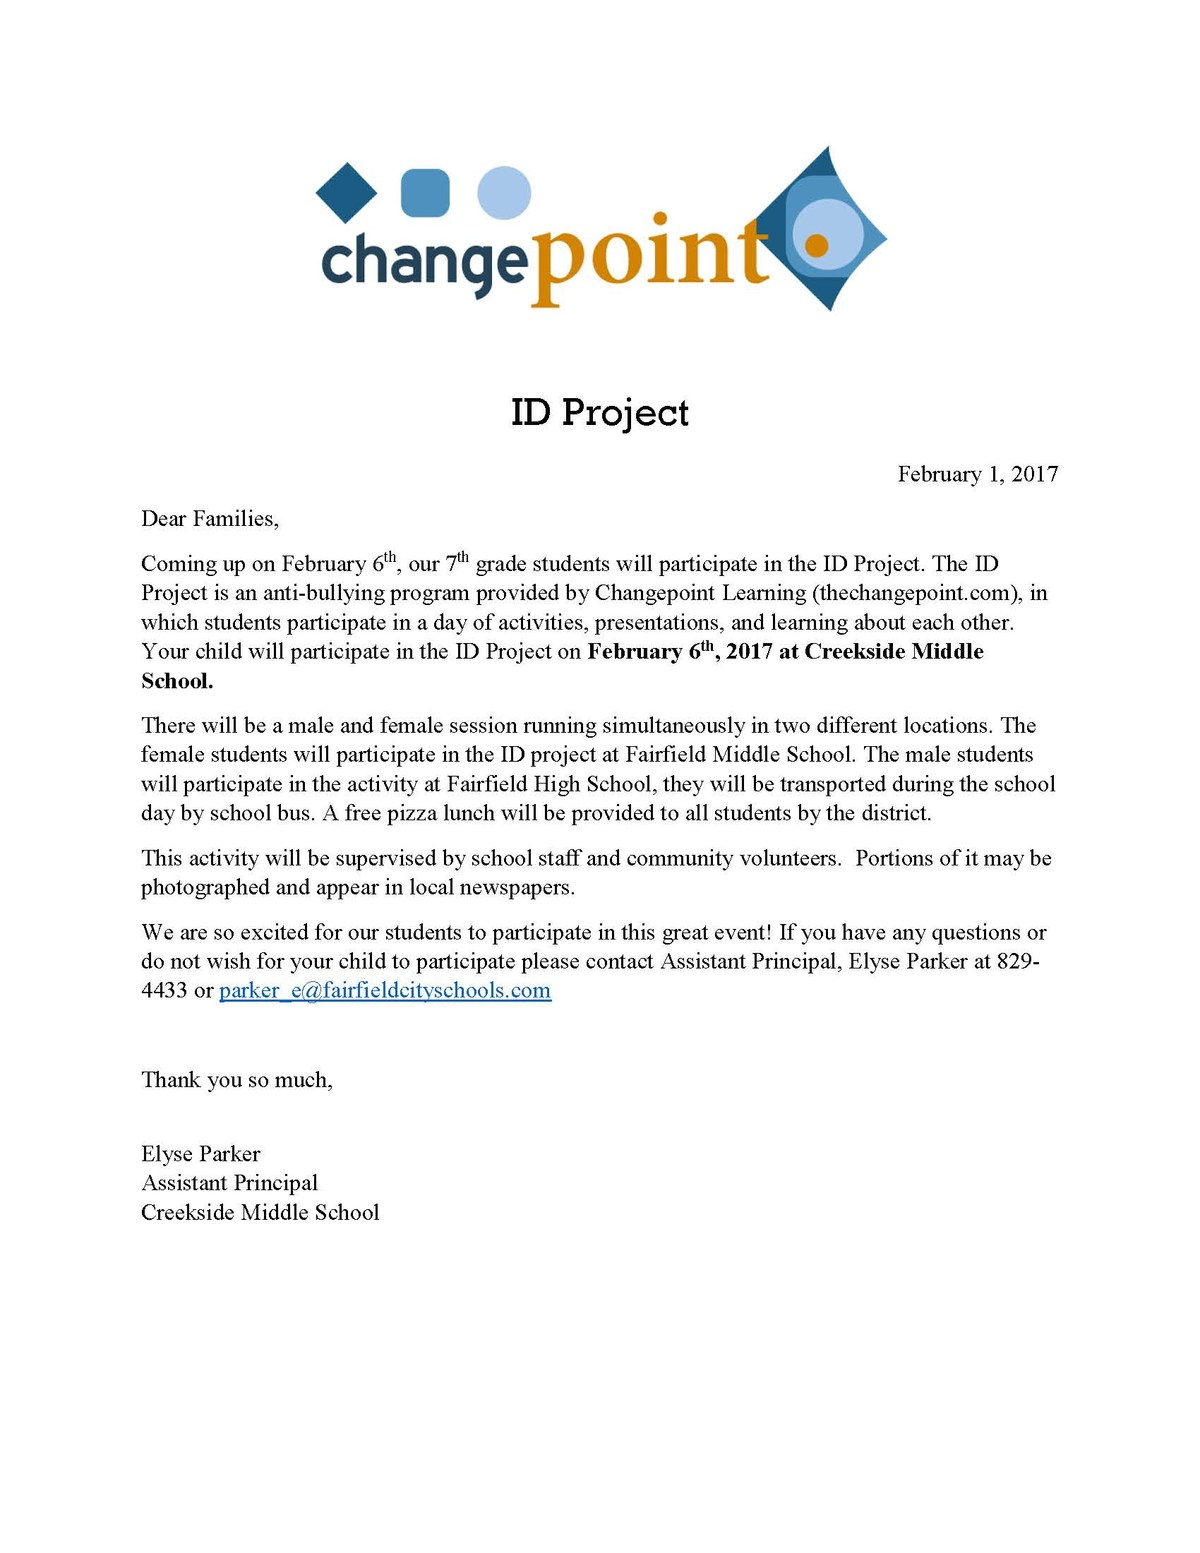 Image of the letter that will be sent home to parents regarding their child's participation in the ID Project, an anti-bullying program on Feb. 6. a pdf version of the letter is in the file list at the bottom of this page.